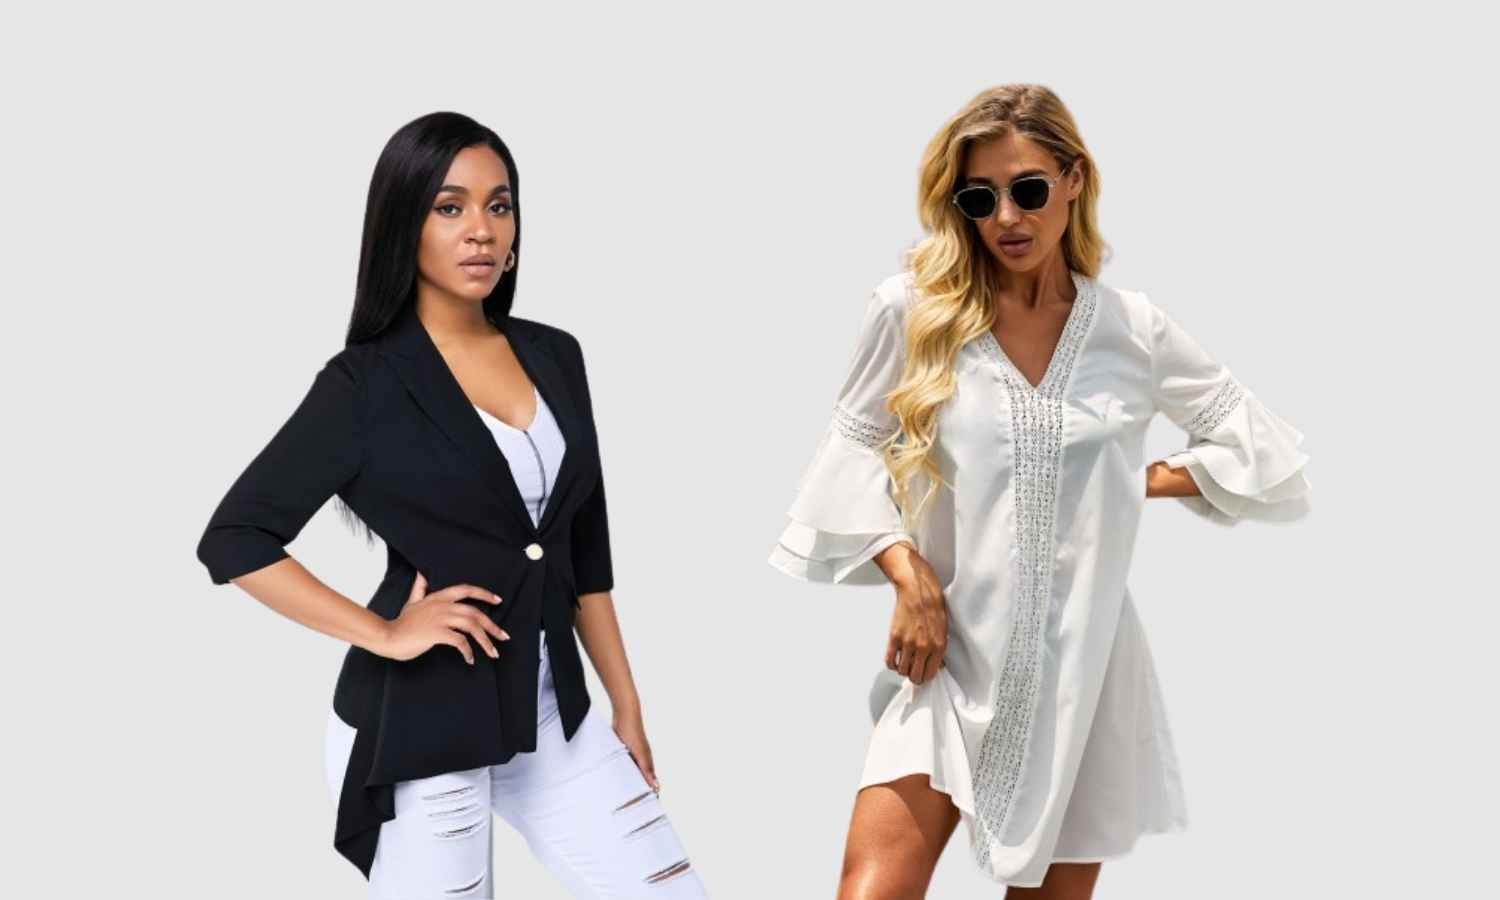 Modlily Reviews: Is this Online Retailer Worth It?